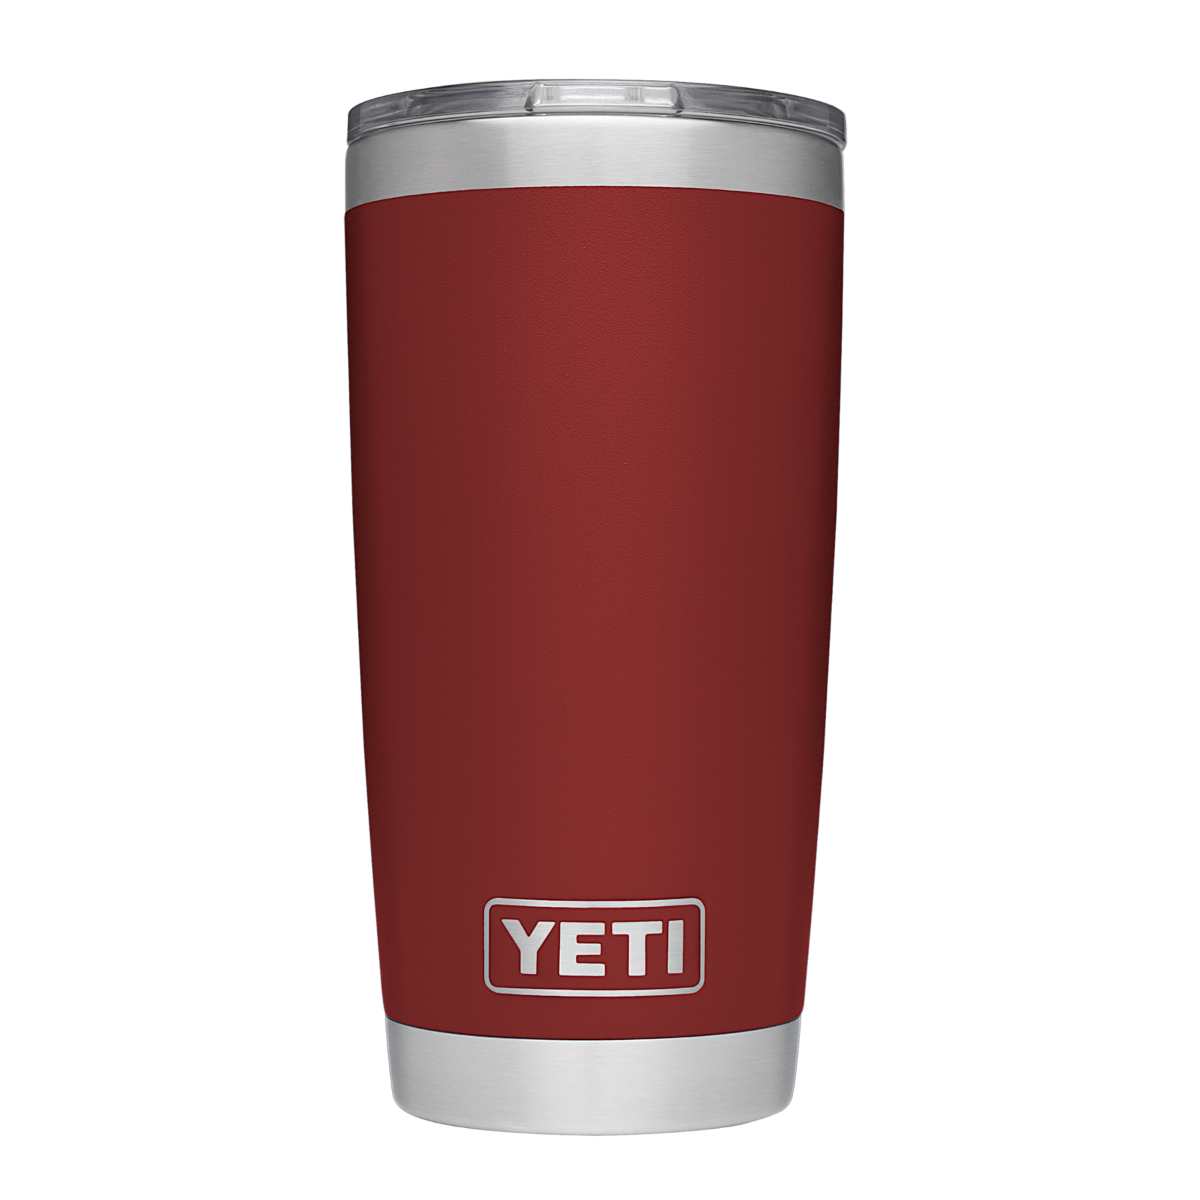 YETI Rambler 20oz Tumbler with MagSlider Lid-Red